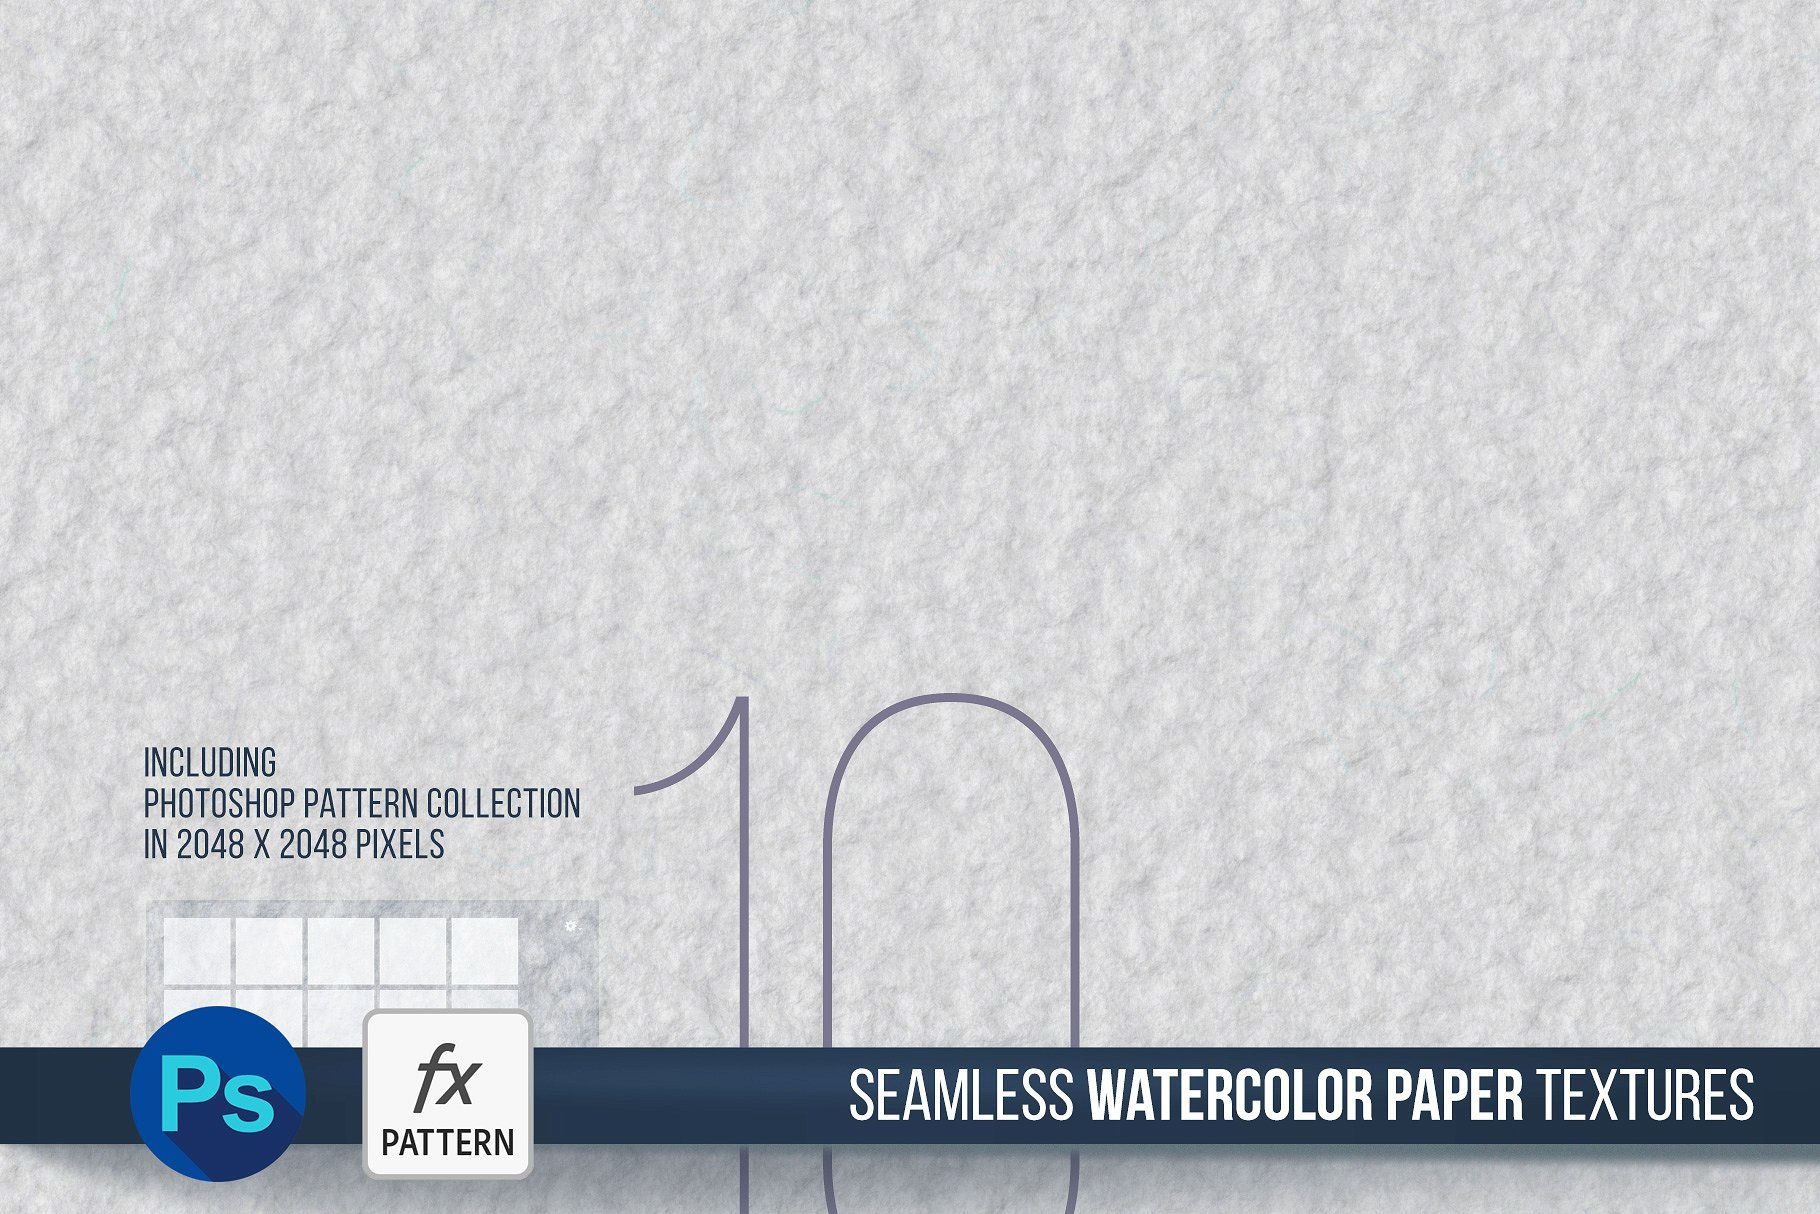 10 Seamless Watercolor Paper Texture Paper Texture Watercolor Paper